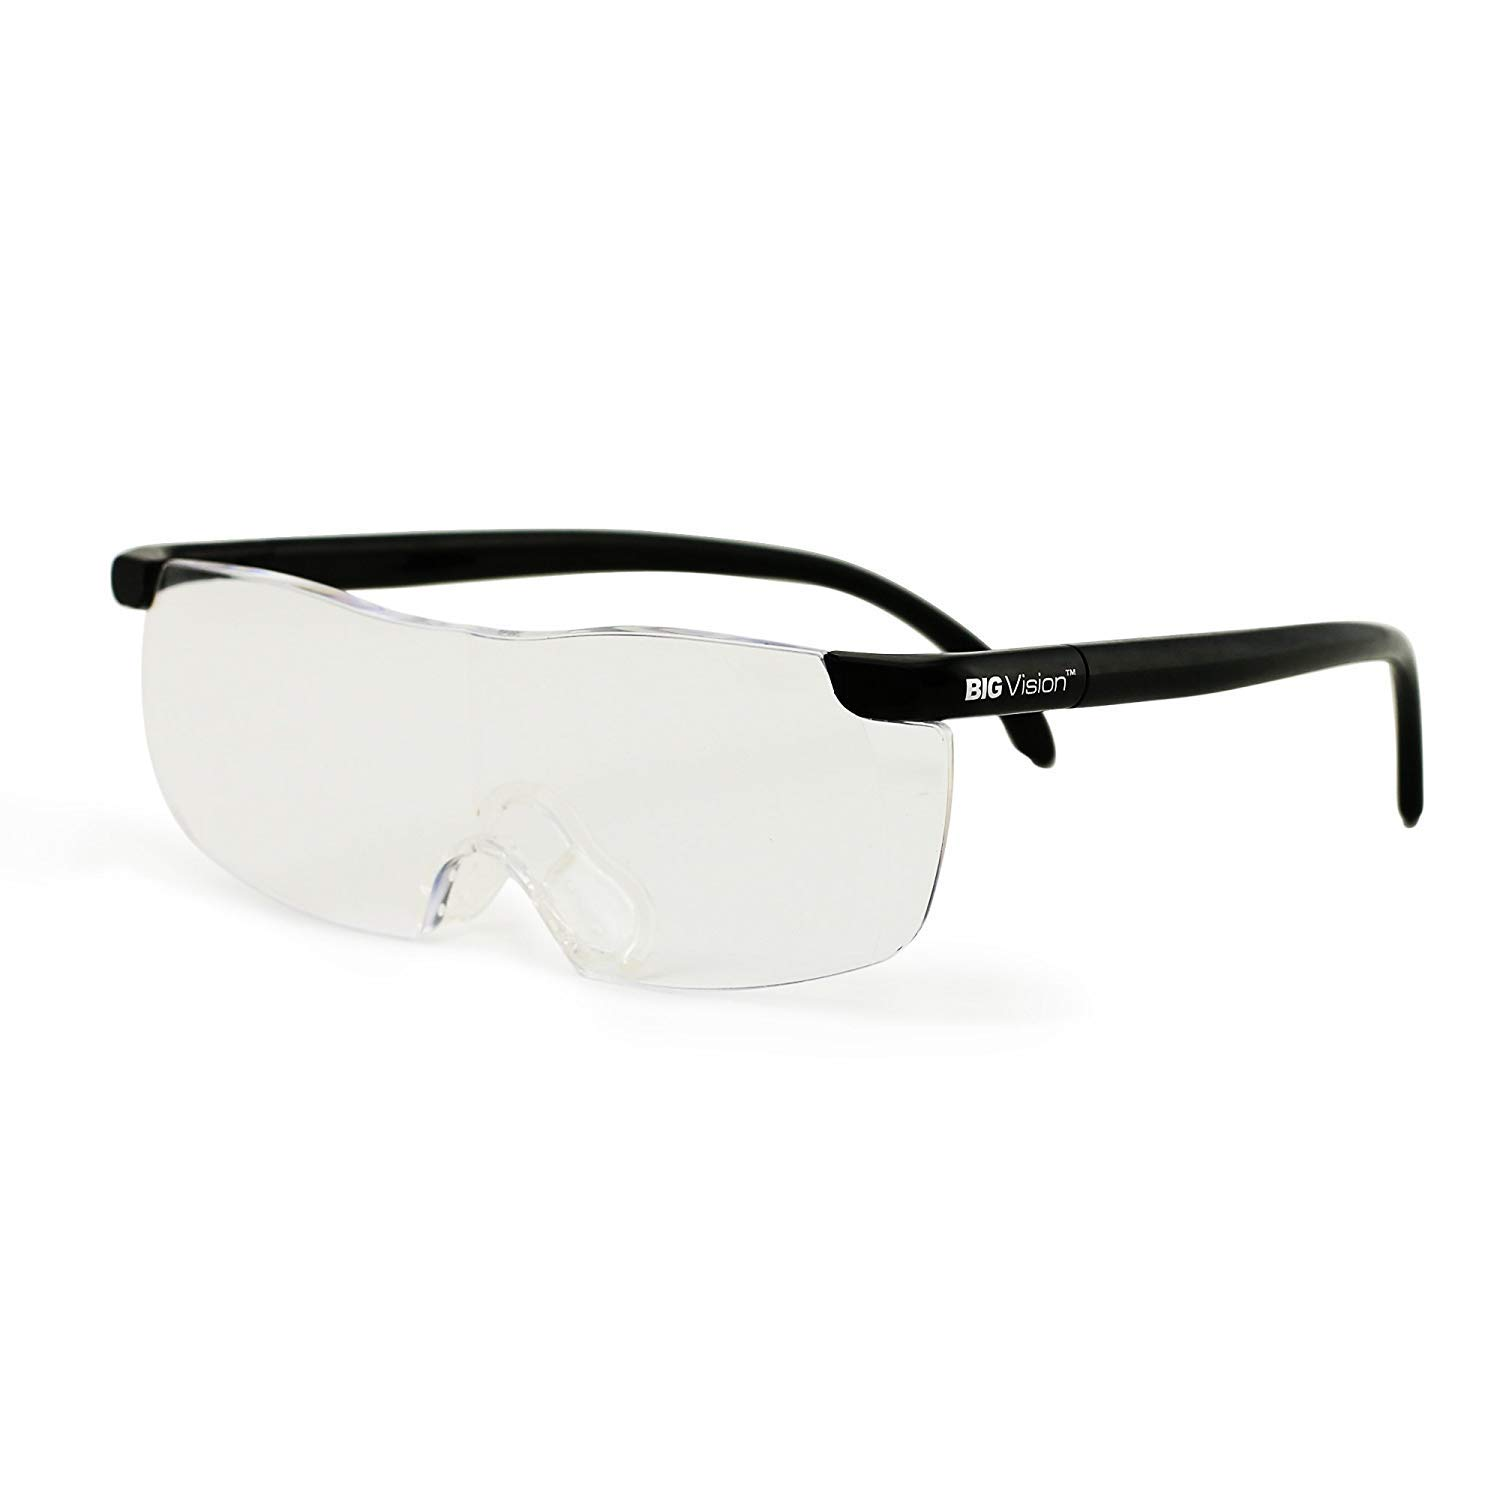 162e4ef28c Amazon.com  As Seen on TV Instant 20 20 Adjustable Glasses